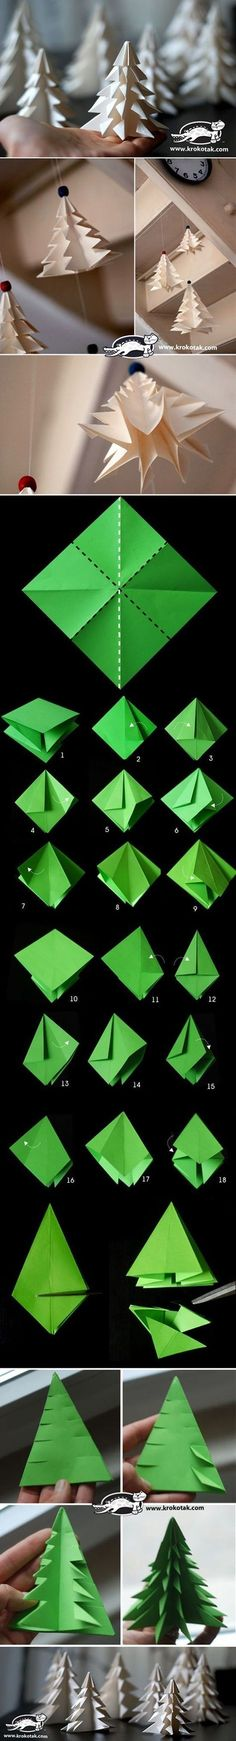 DIY Paper Christmas Tree To Decorate Your Rooms Instead of buying Christmas tree, you can make some paper Christmas tree with different colors to decorate your rooms. The steps are pretty simple - DIY Paper Christmas Tree Diy Paper Christmas Tree, Noel Christmas, All Things Christmas, Christmas Decorations, Christmas Ornaments, Origami Christmas, Tree Decorations, Xmas Trees, Christmas Candle